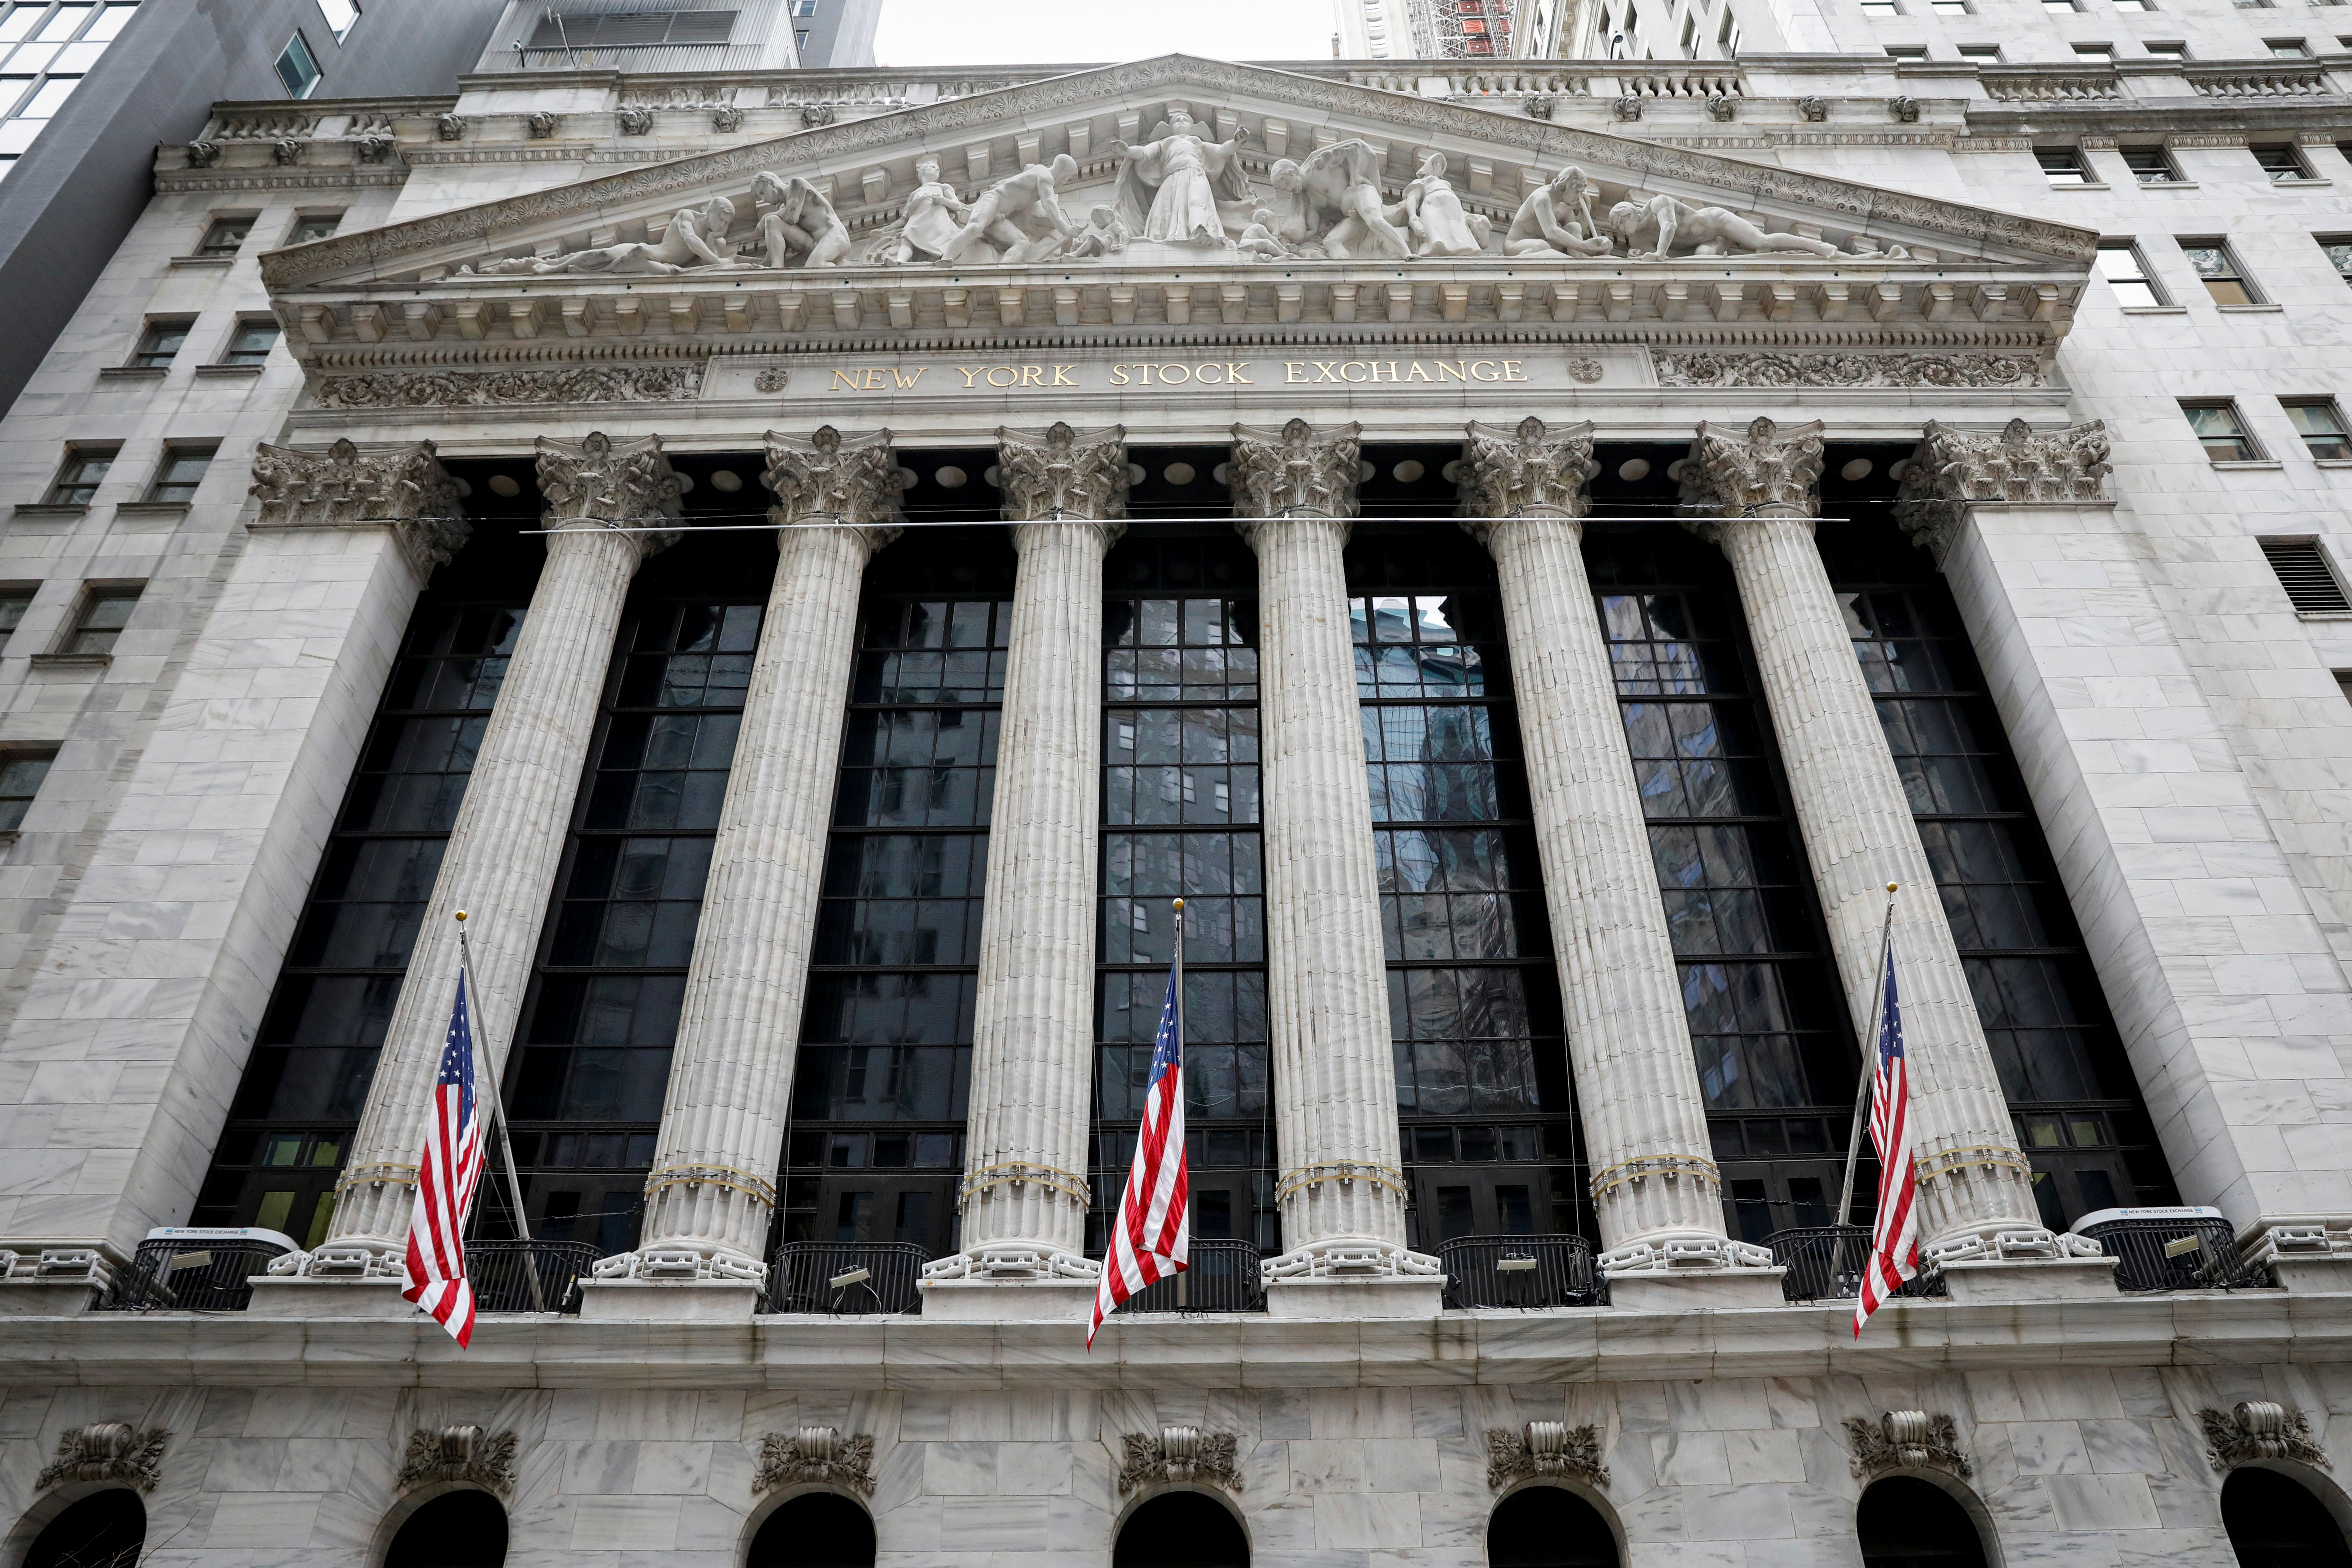 The front facade of the New York Stock Exchange (NYSE) is seen in New York, U.S., February 12, 2021. REUTERS/Brendan McDermid/File Photo